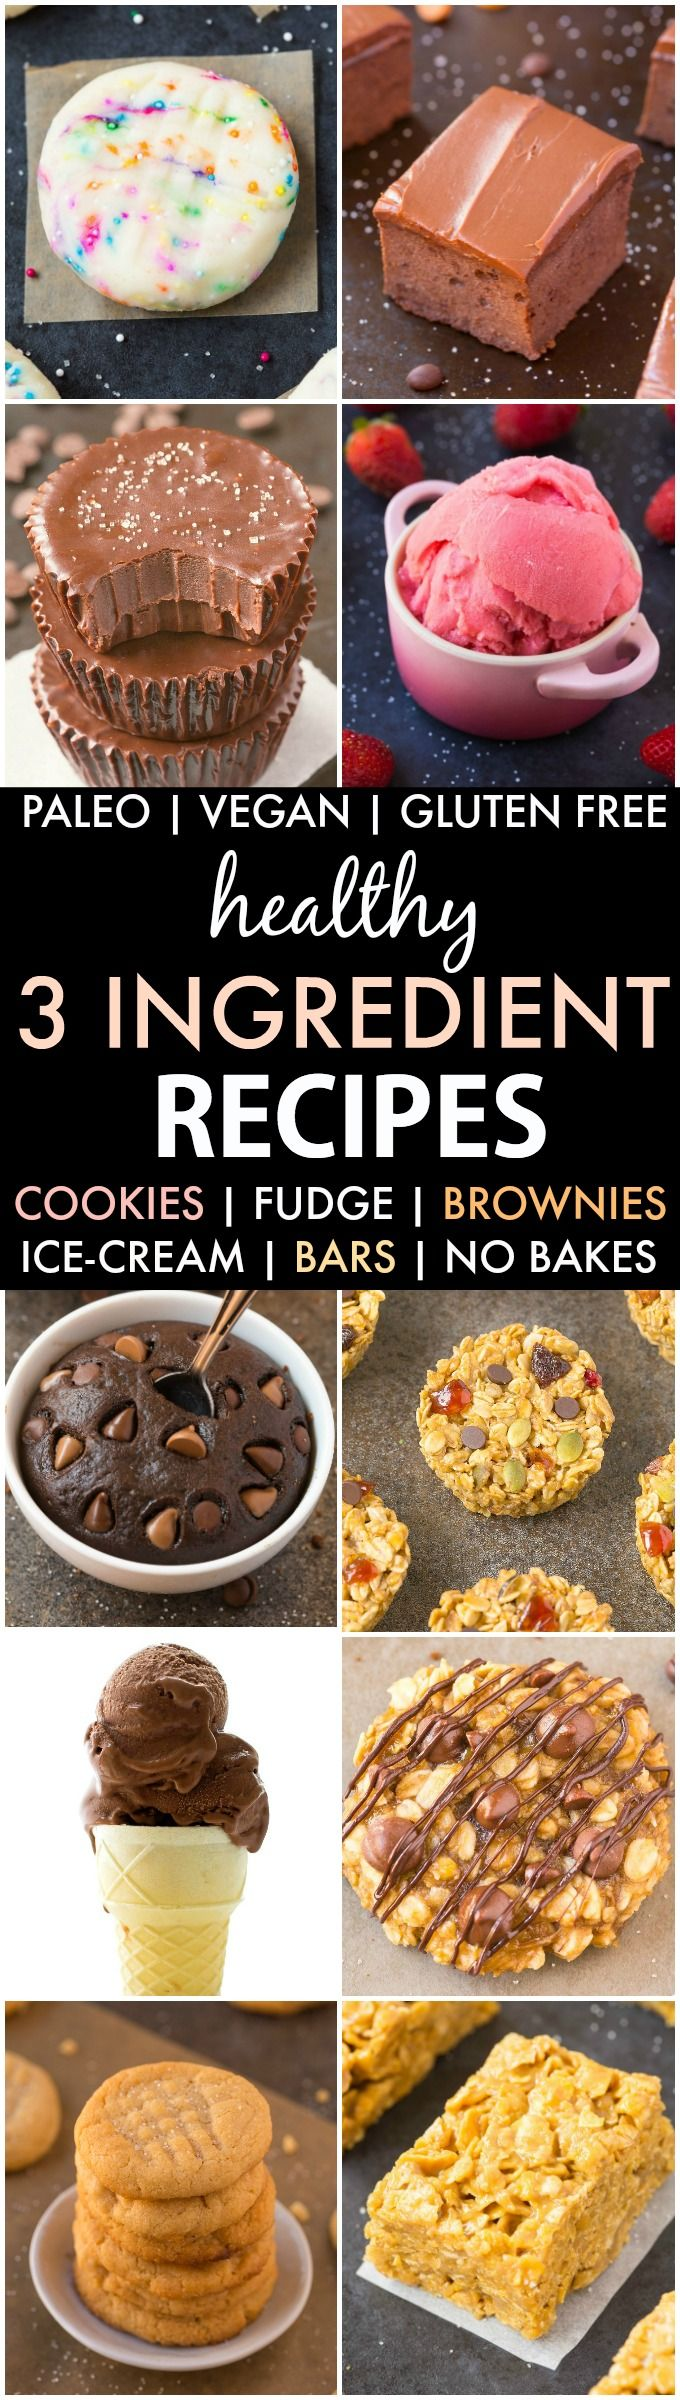 Healthy 3-Ingredient Recipes (V, GF, P, DF)- Quick, easy and guilt-free desserts, snacks and treats which use just three ingredients and use wholesome, clean ingredients! {vegan, gluten free, paleo recipe}- thebigmansworld.com